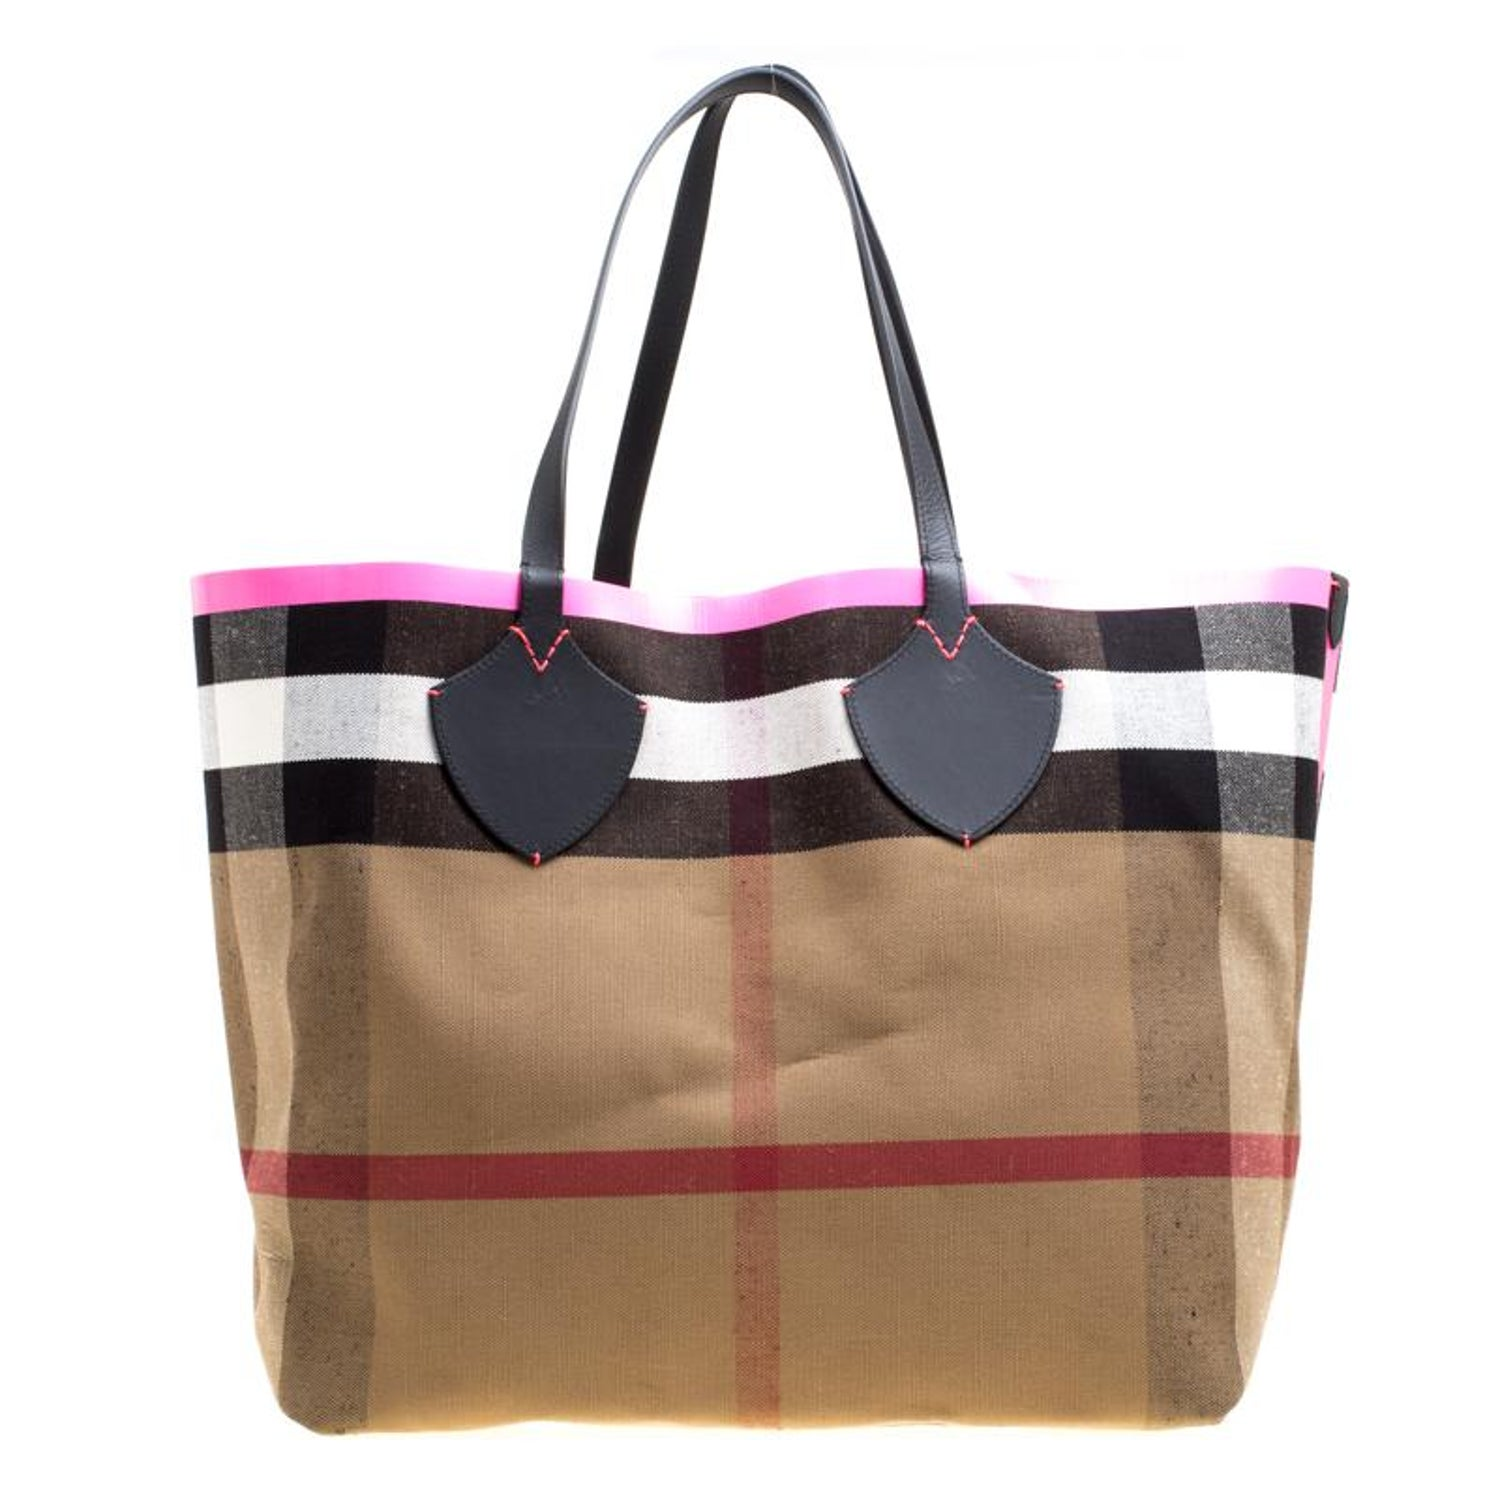 Burberry Black Neon Pink Canvas And Leather XL Reversible Tote For Sale at  1stdibs 1fa0920619